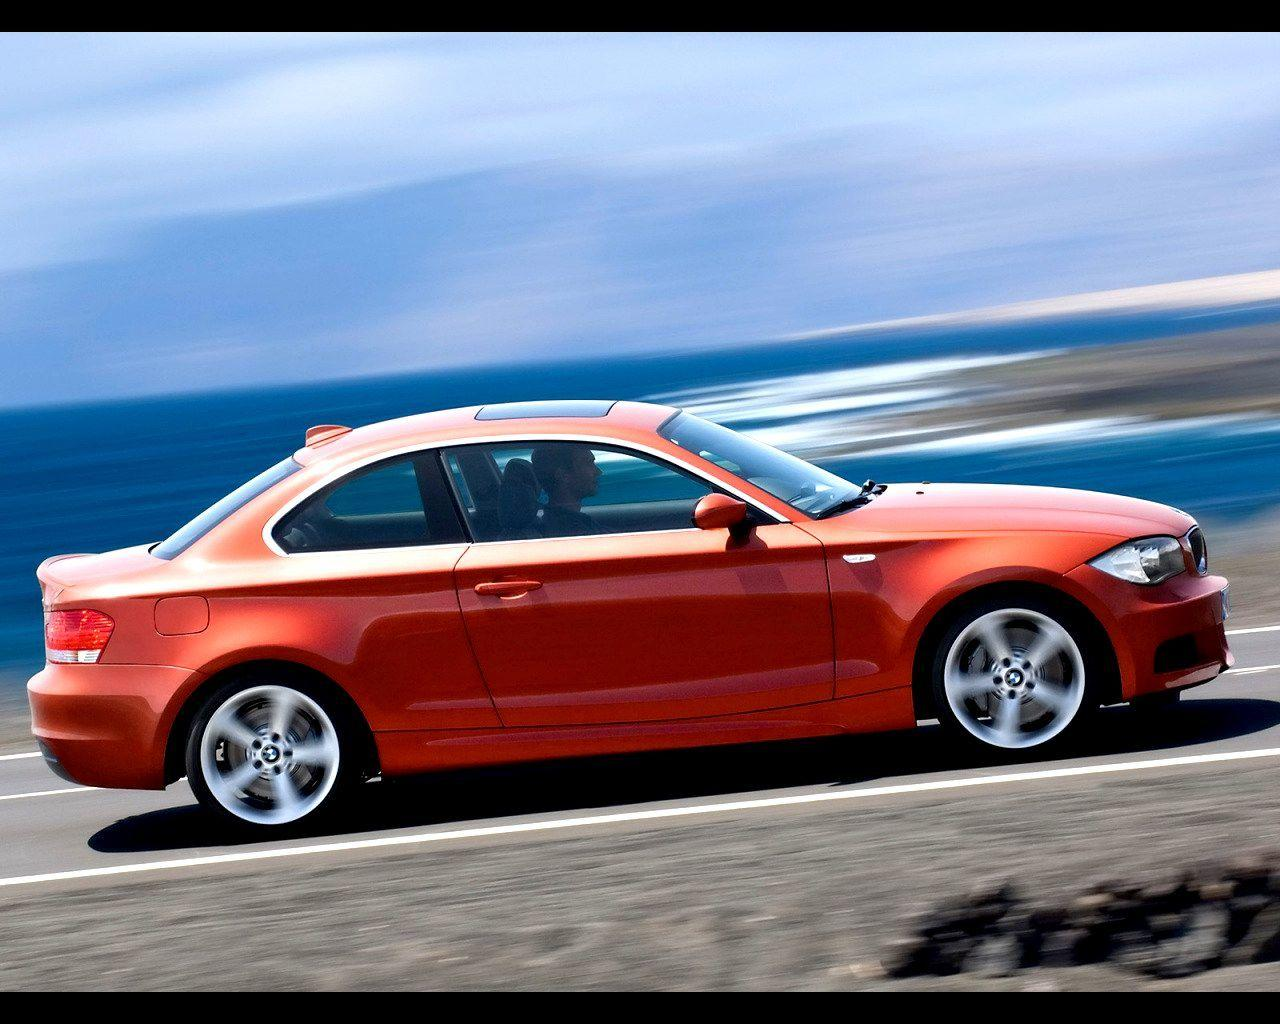 2008 BMW 1 Series Coupe Wallpaper 19 - 1280x1024